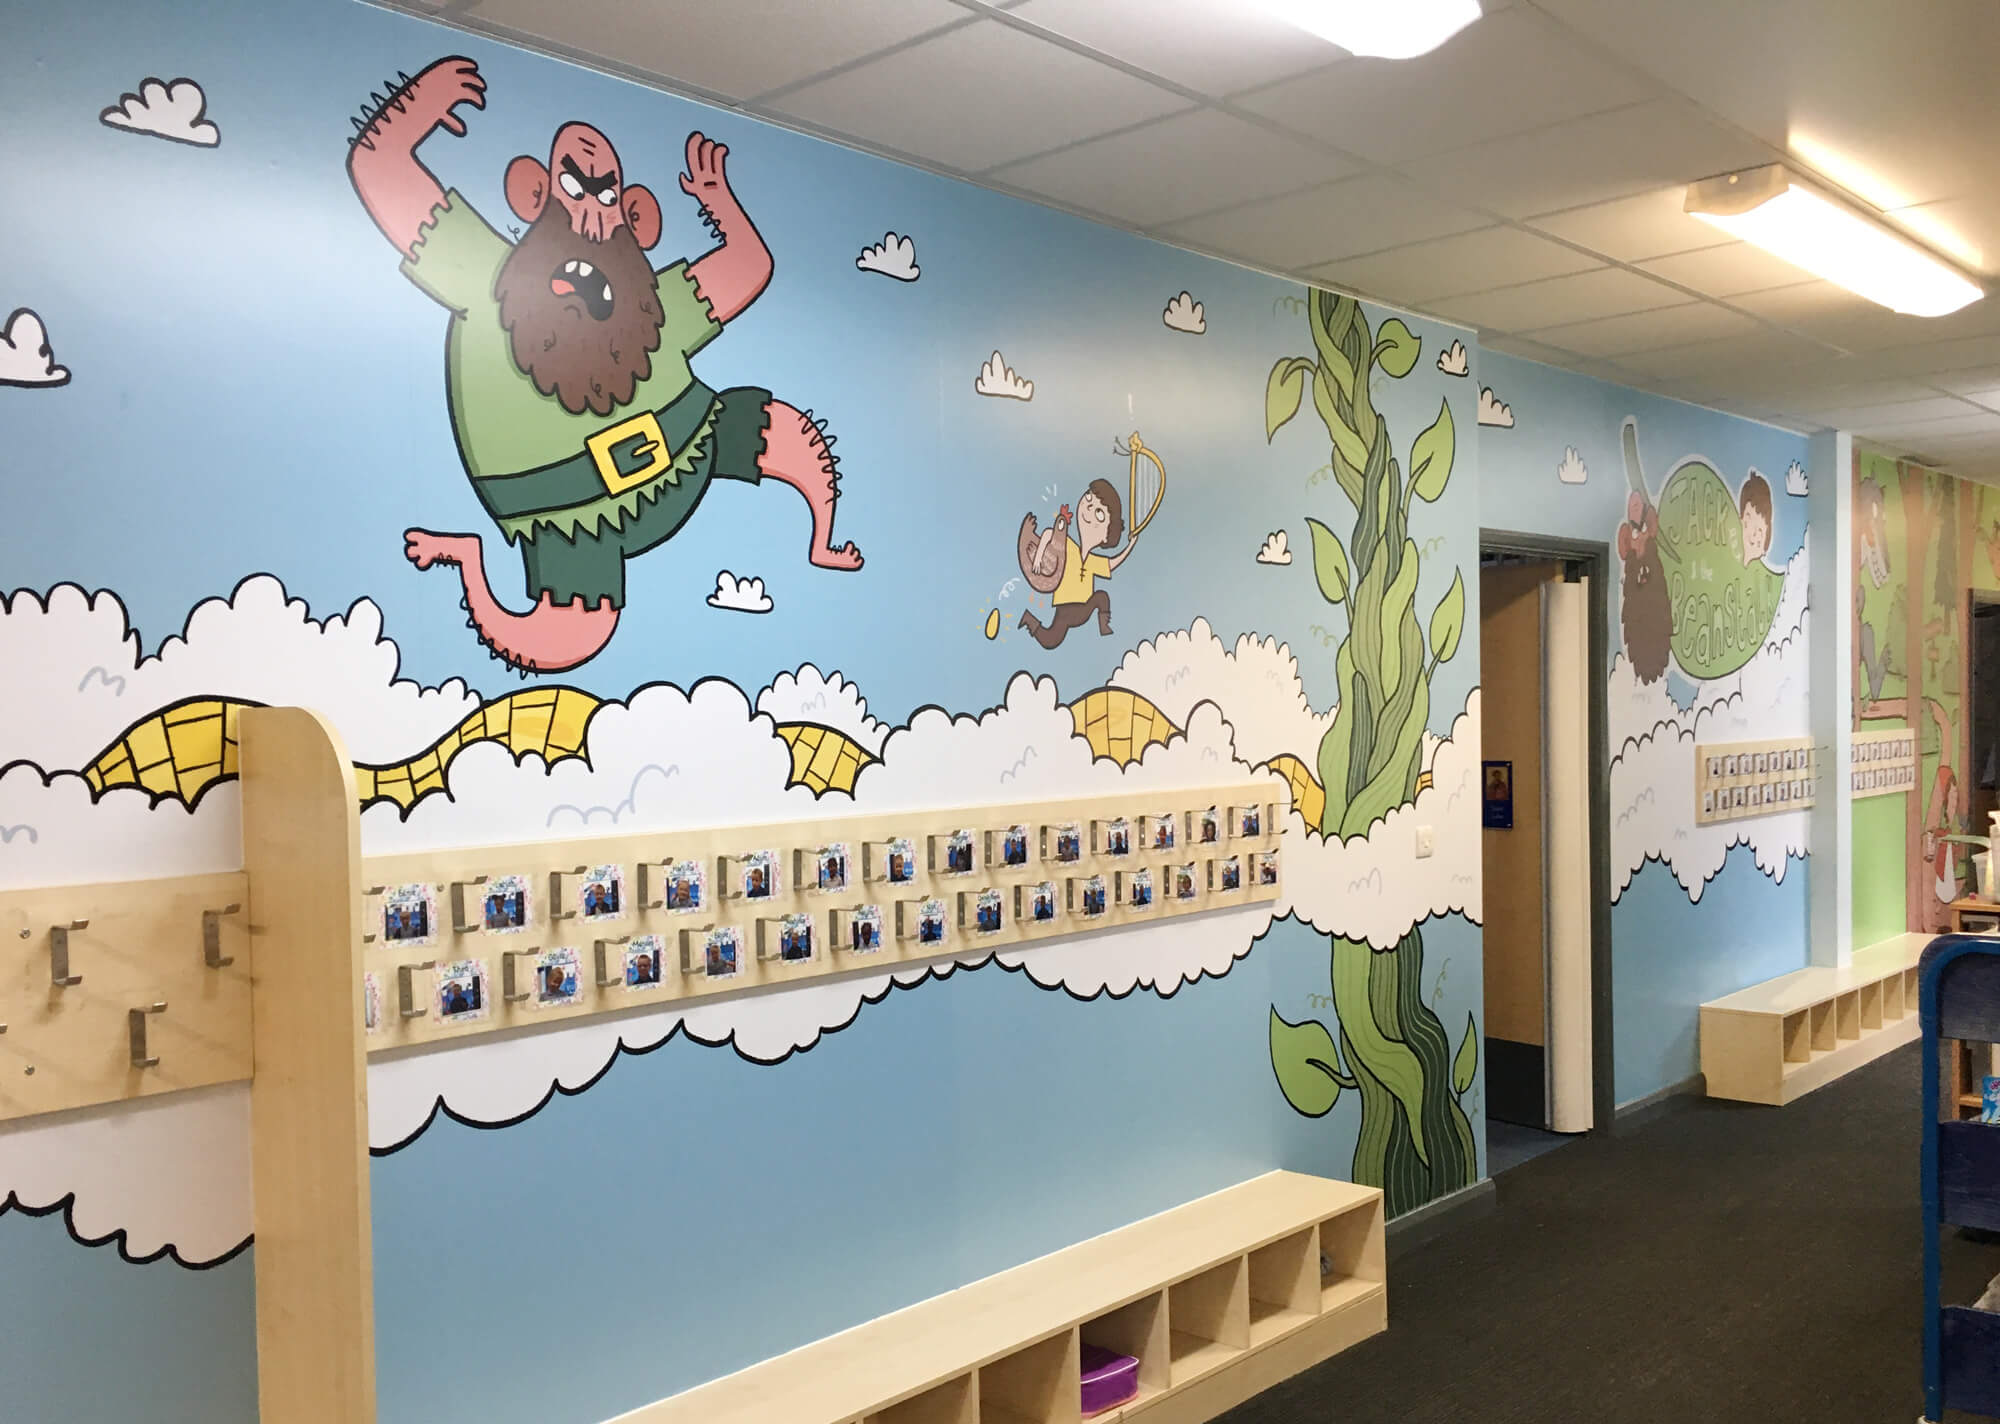 sacred_heart_primary_traditional_tales_wallgraphics_02.jpg